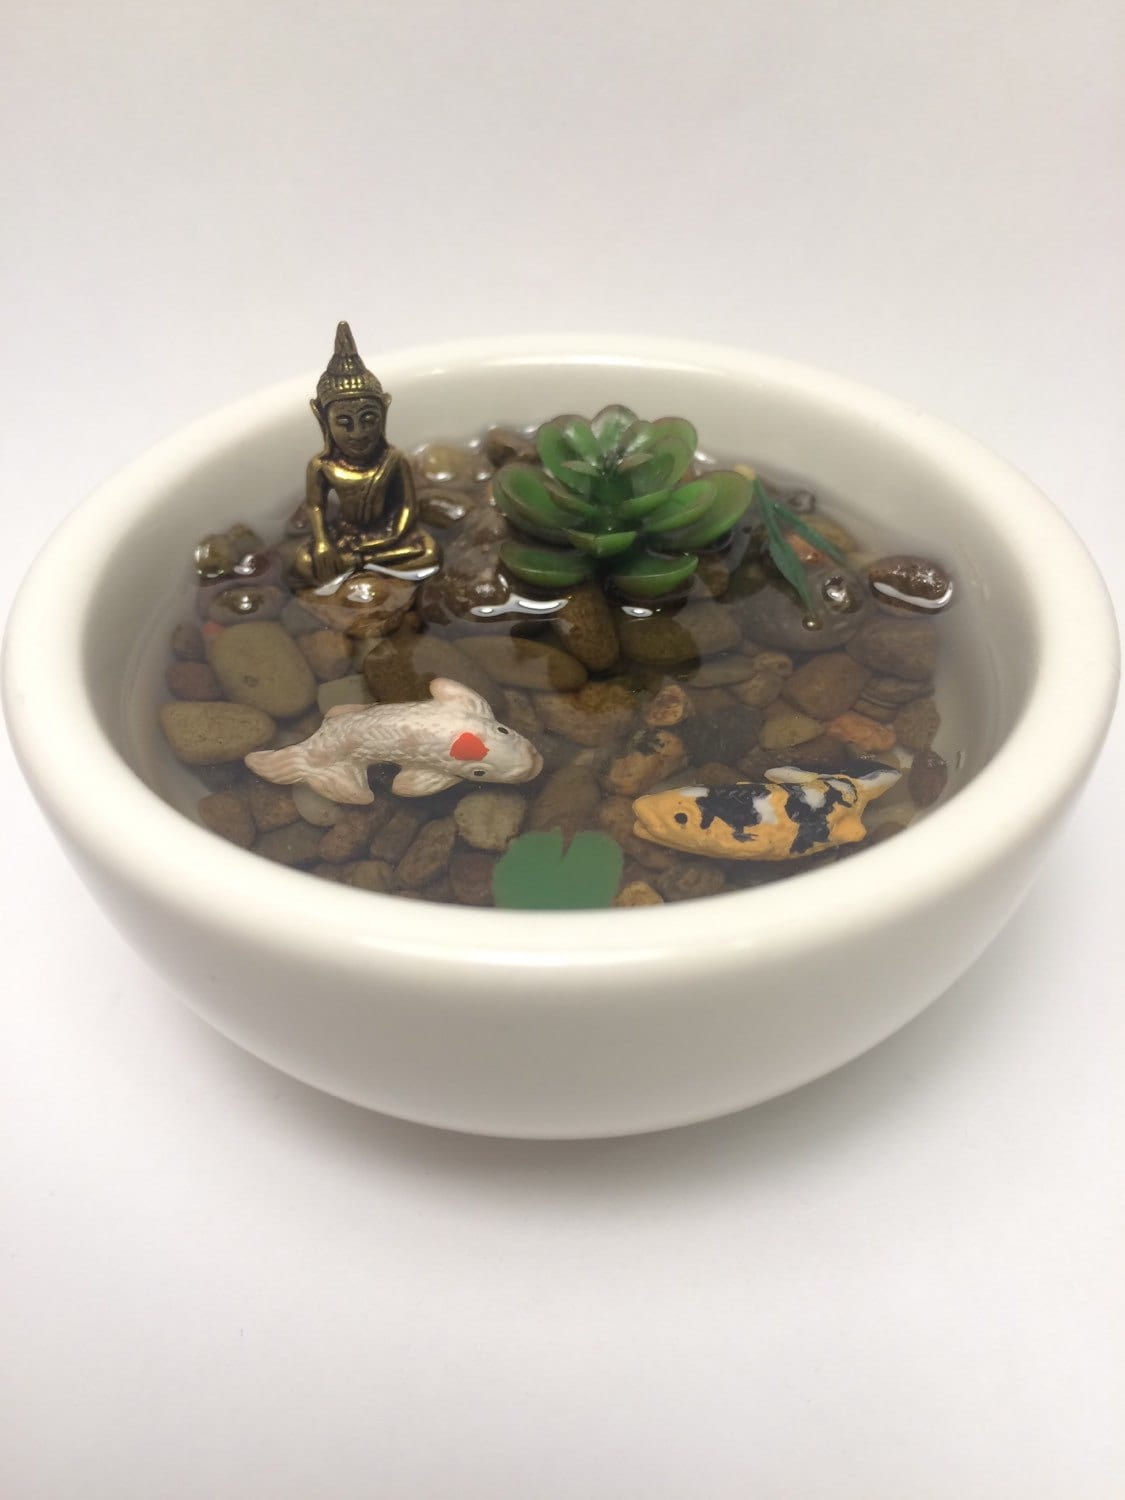 Resin koi fish pond with miniature bronze buddha in pure white for Resin koi fish